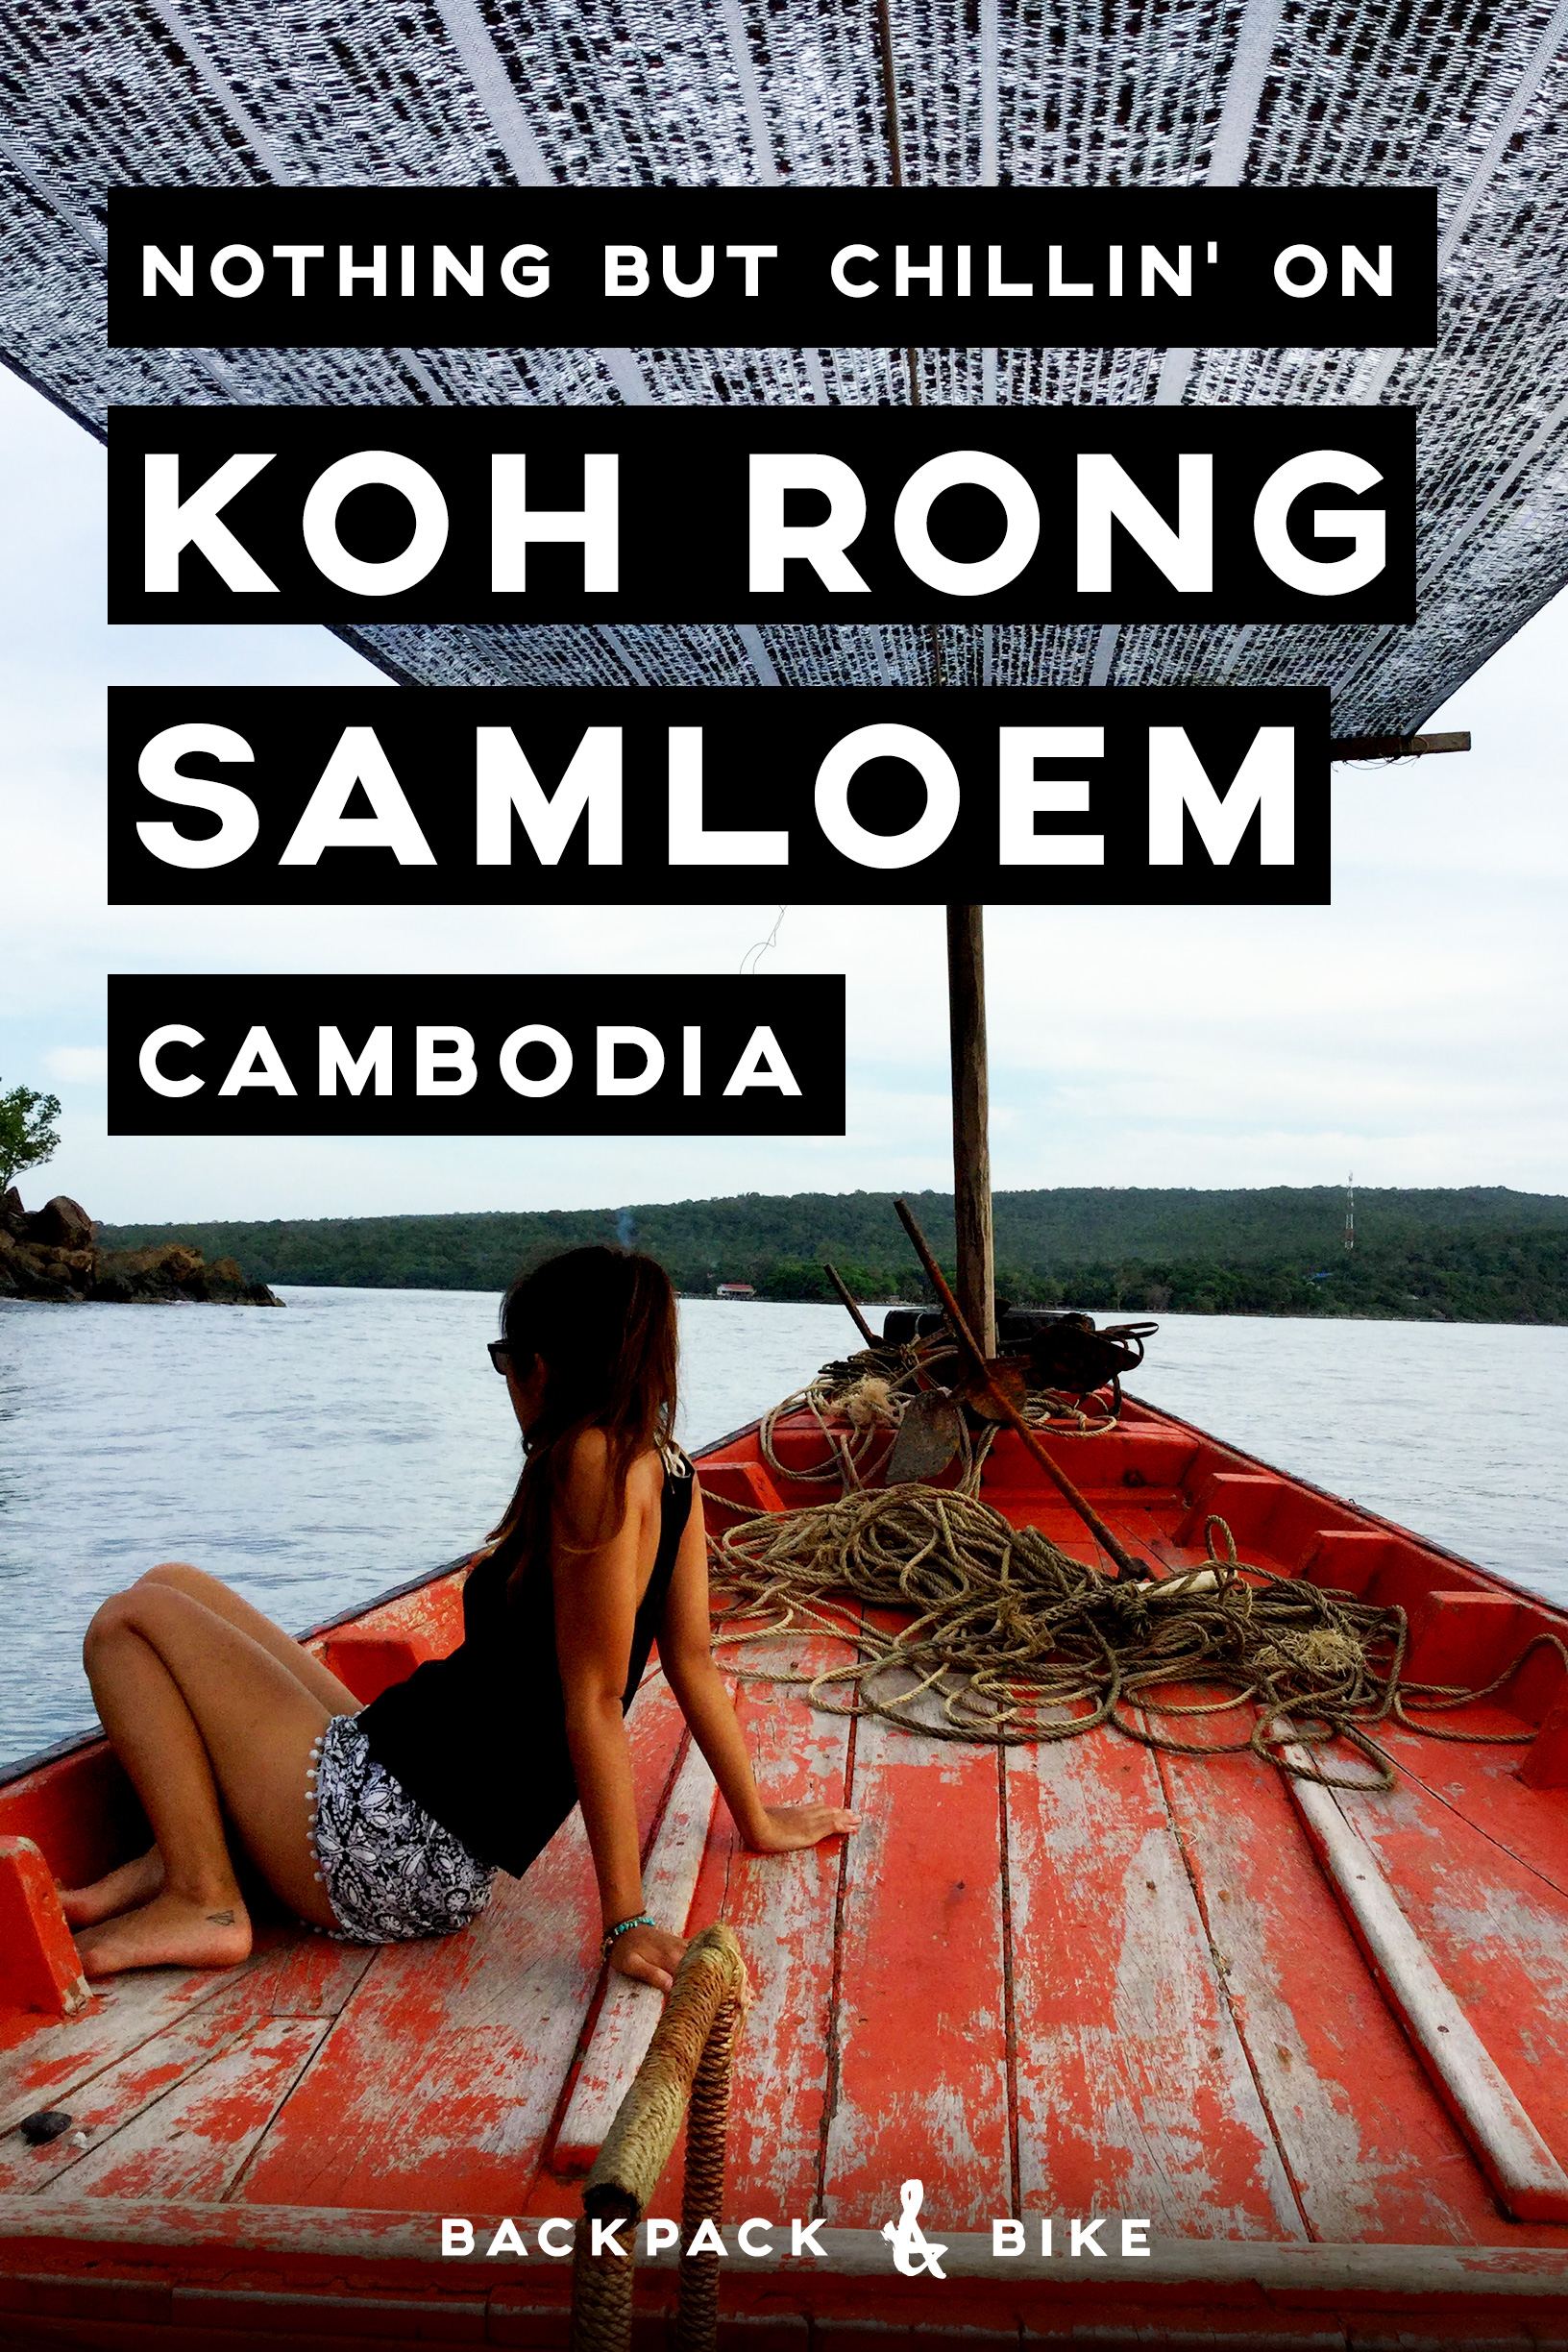 Nothing but chillin' on Koh Rong Samloem | Cambodia